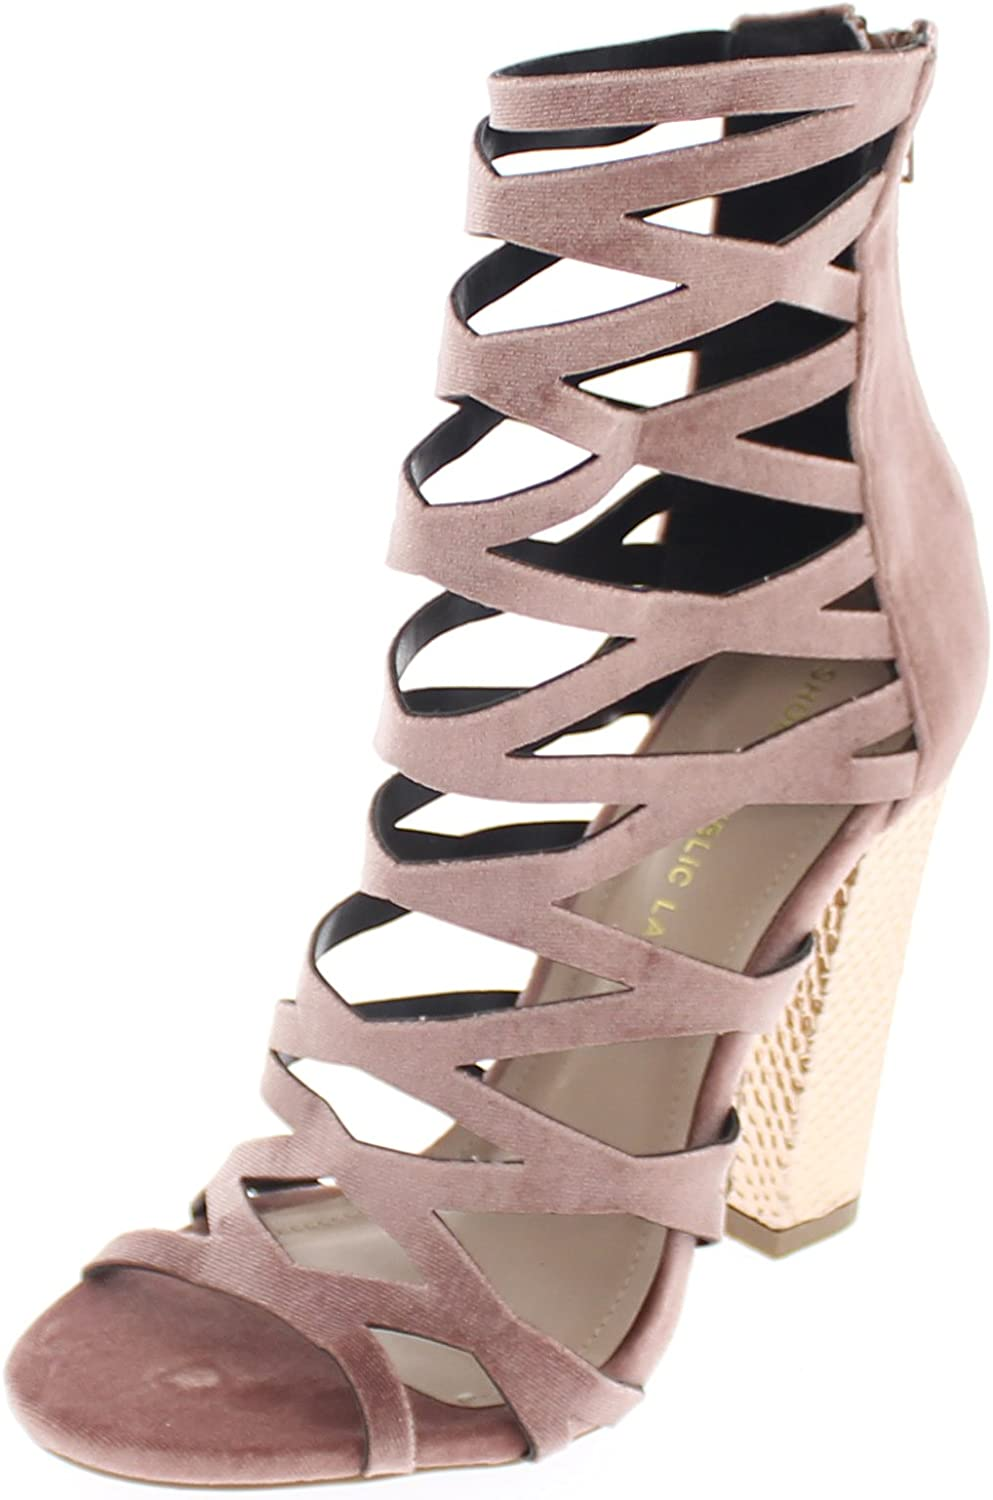 shoes Republic Gladiator Open Toe Ankle High Sandal Shimmy